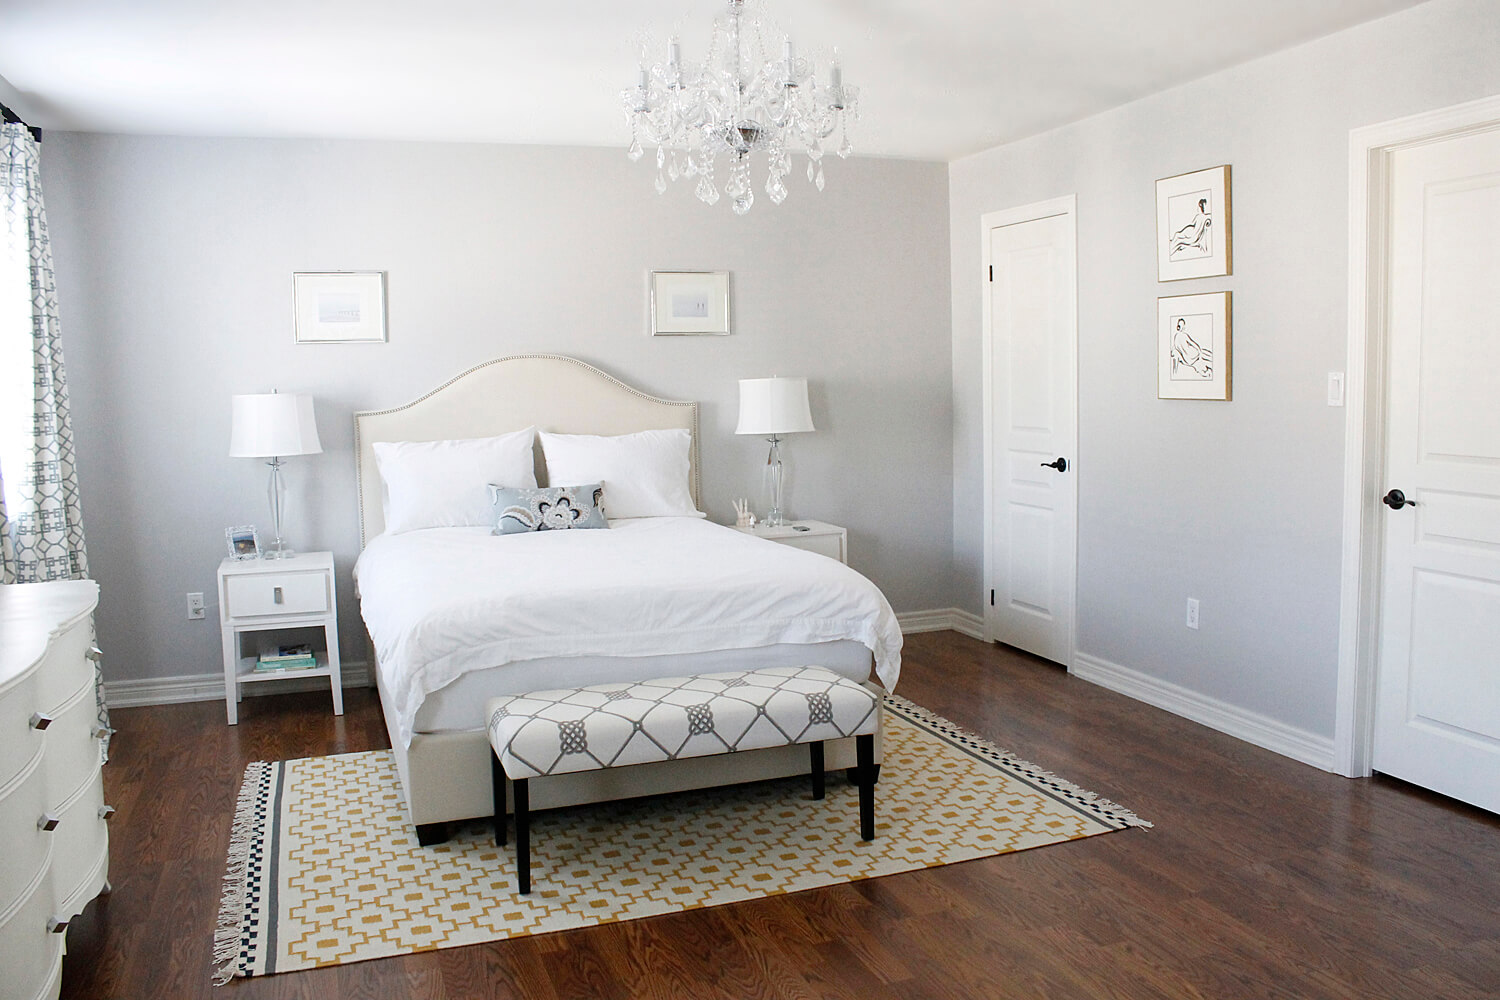 bedroom-engaging-image-of-natural-bedroom-decoration-using-light-gray-bedroom-wall-prints-including-curved-studded-white-velvet-headboard-and-white-glass-crystal-bedroom-chandeliers-exquisite-picture (1)